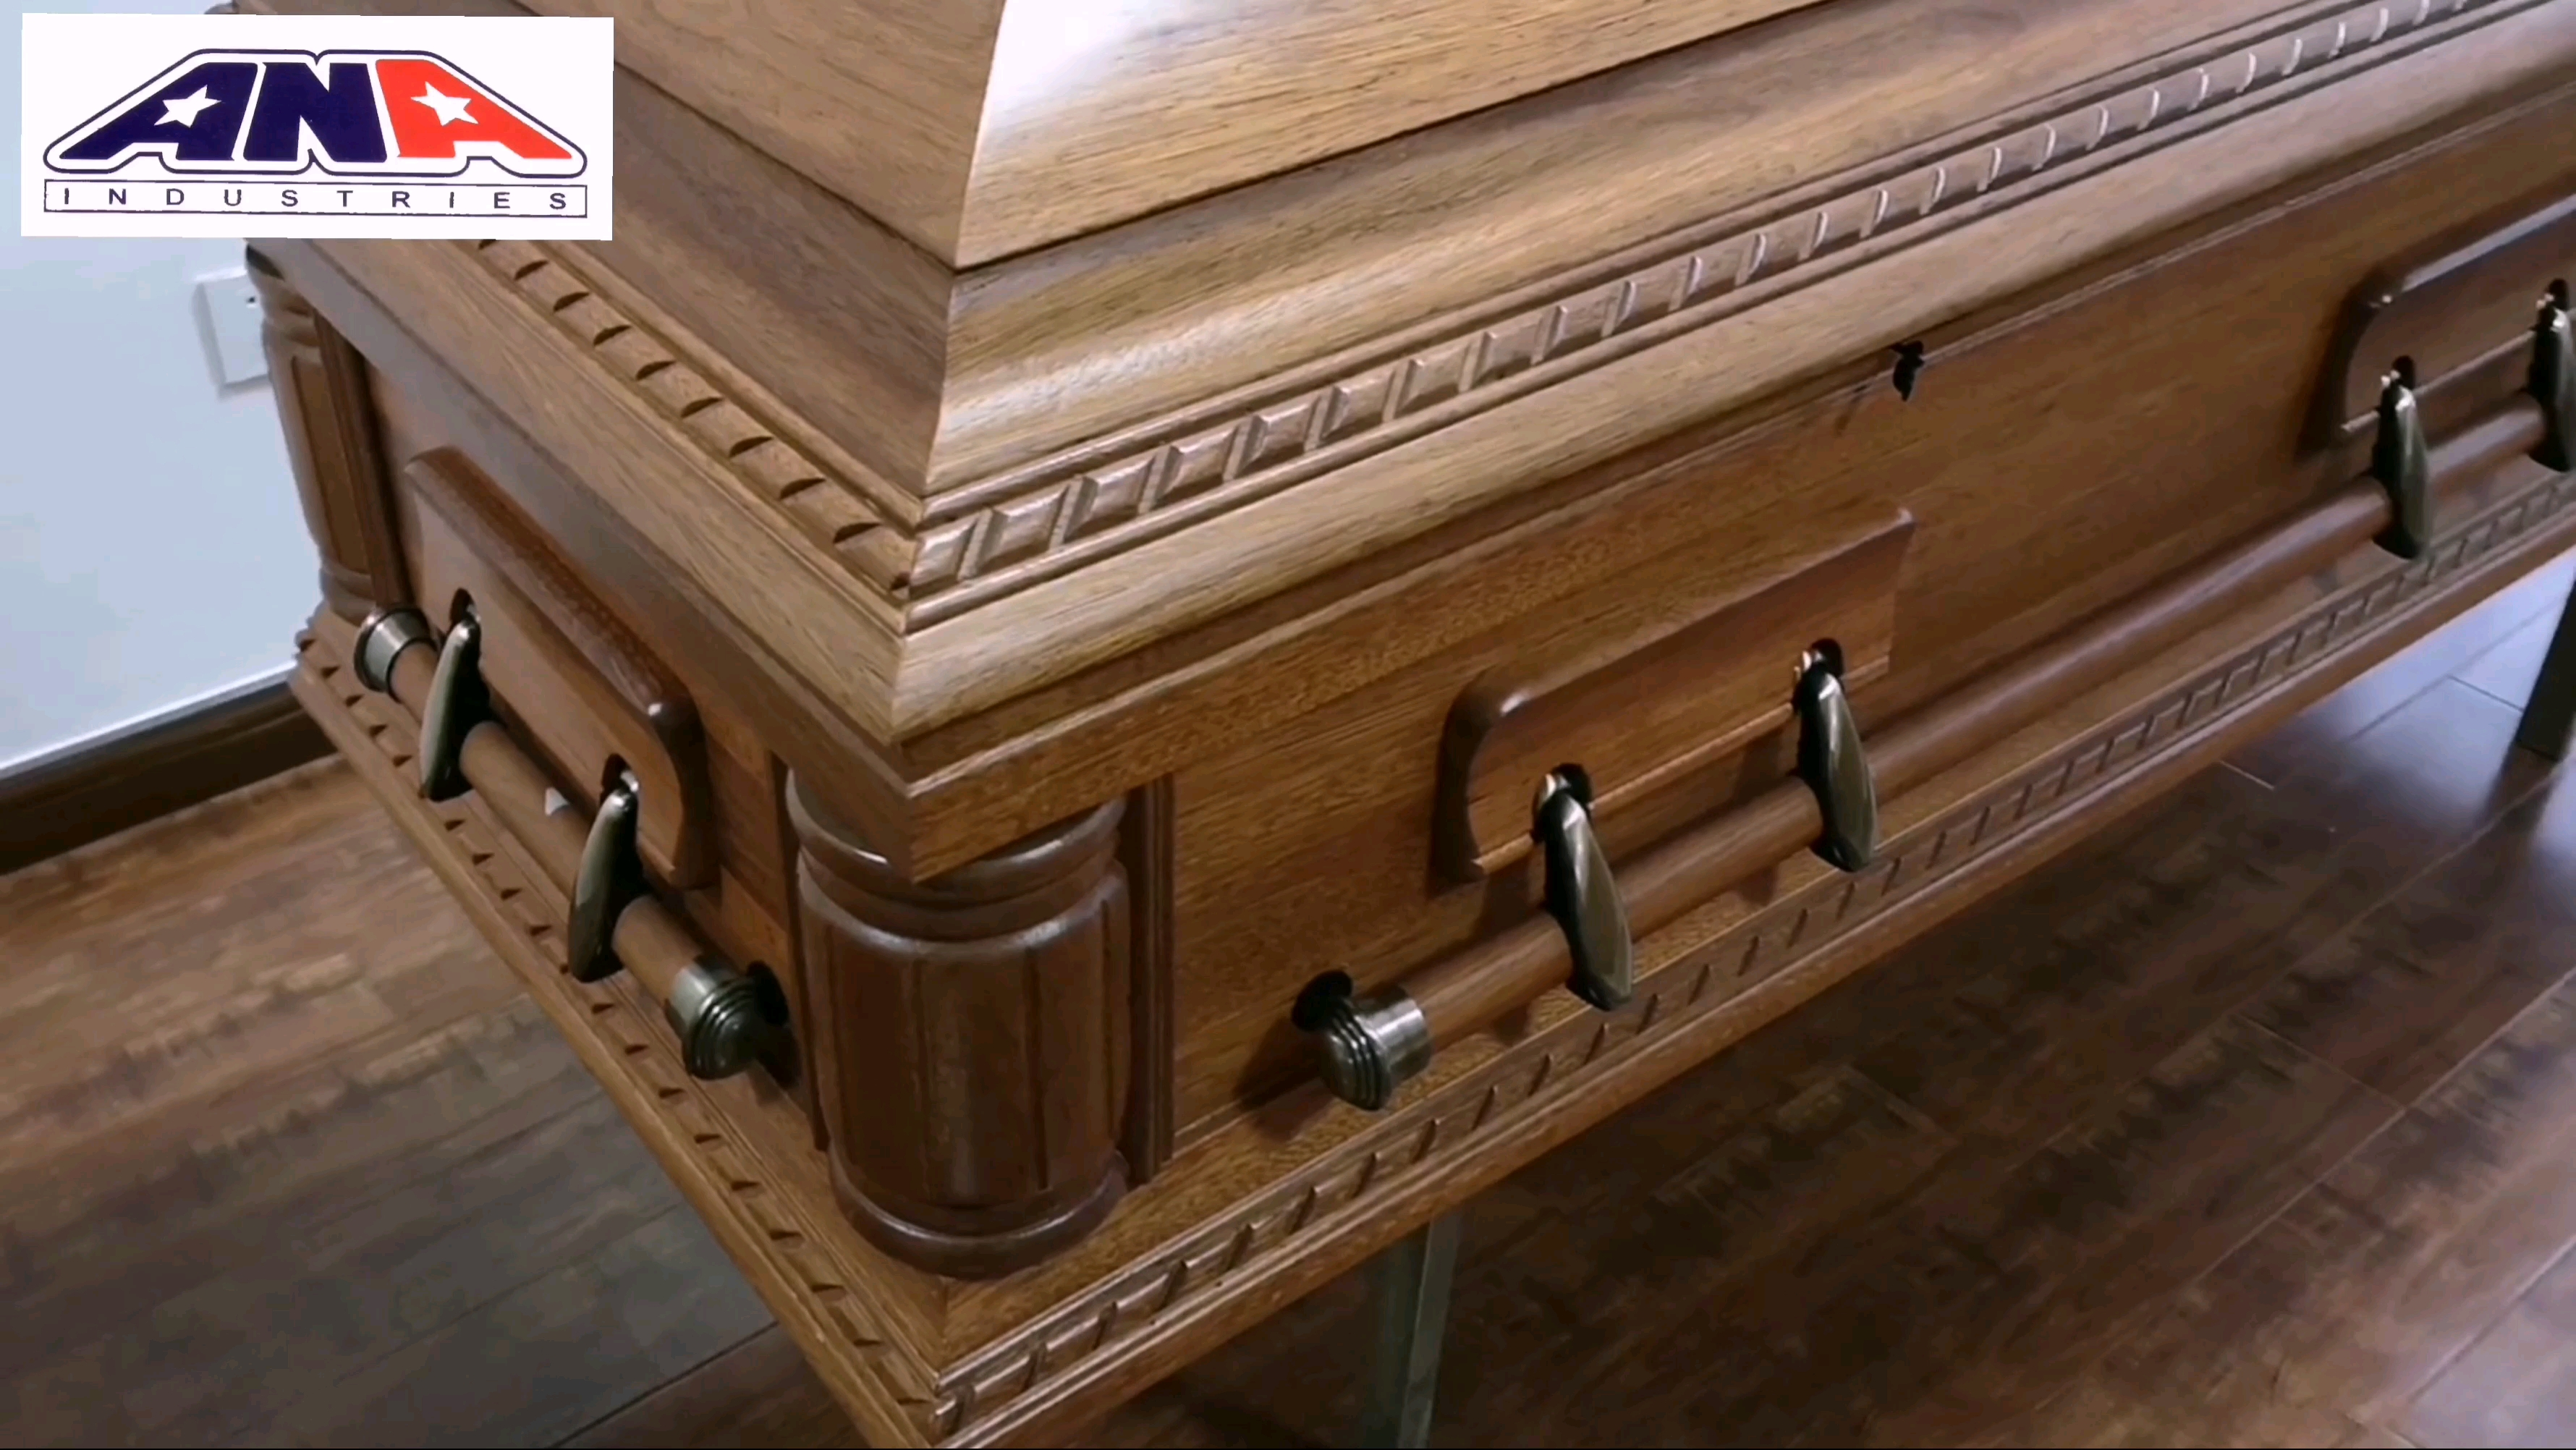 ANA Funeral supplies Wood Oak Caskets Made in China